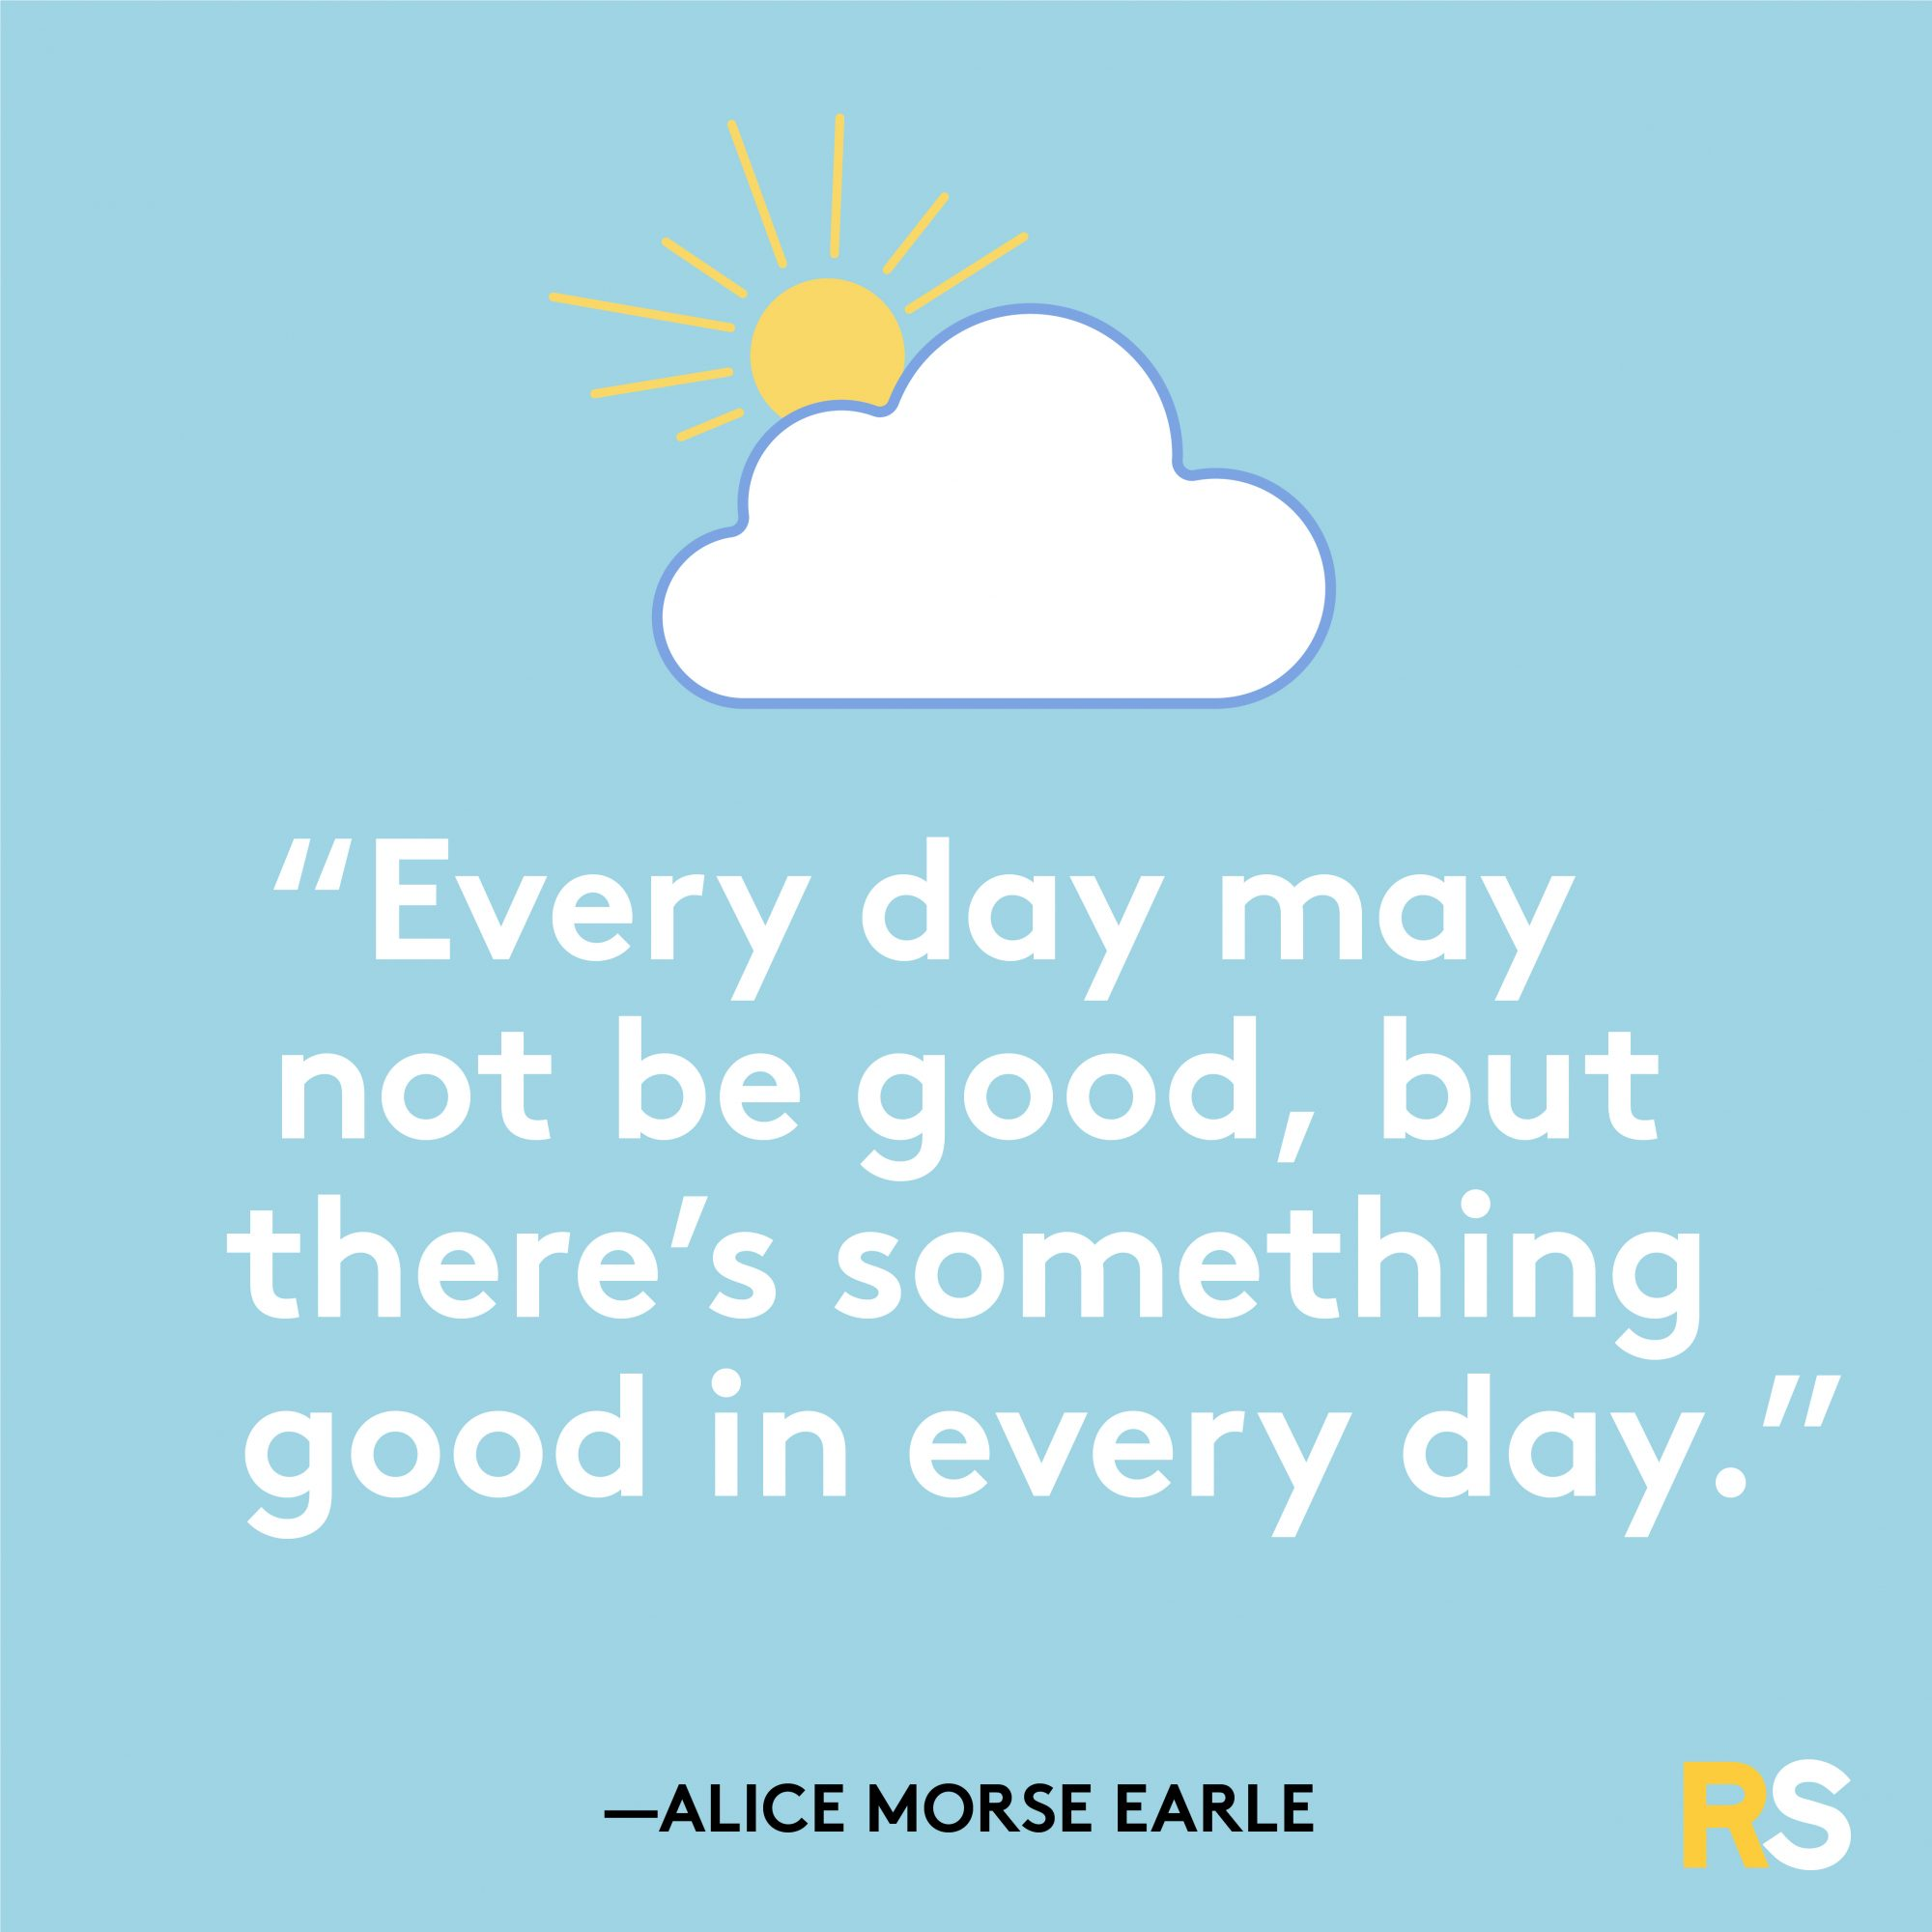 Something Good in Every Day Quote by Alice Morse Earle